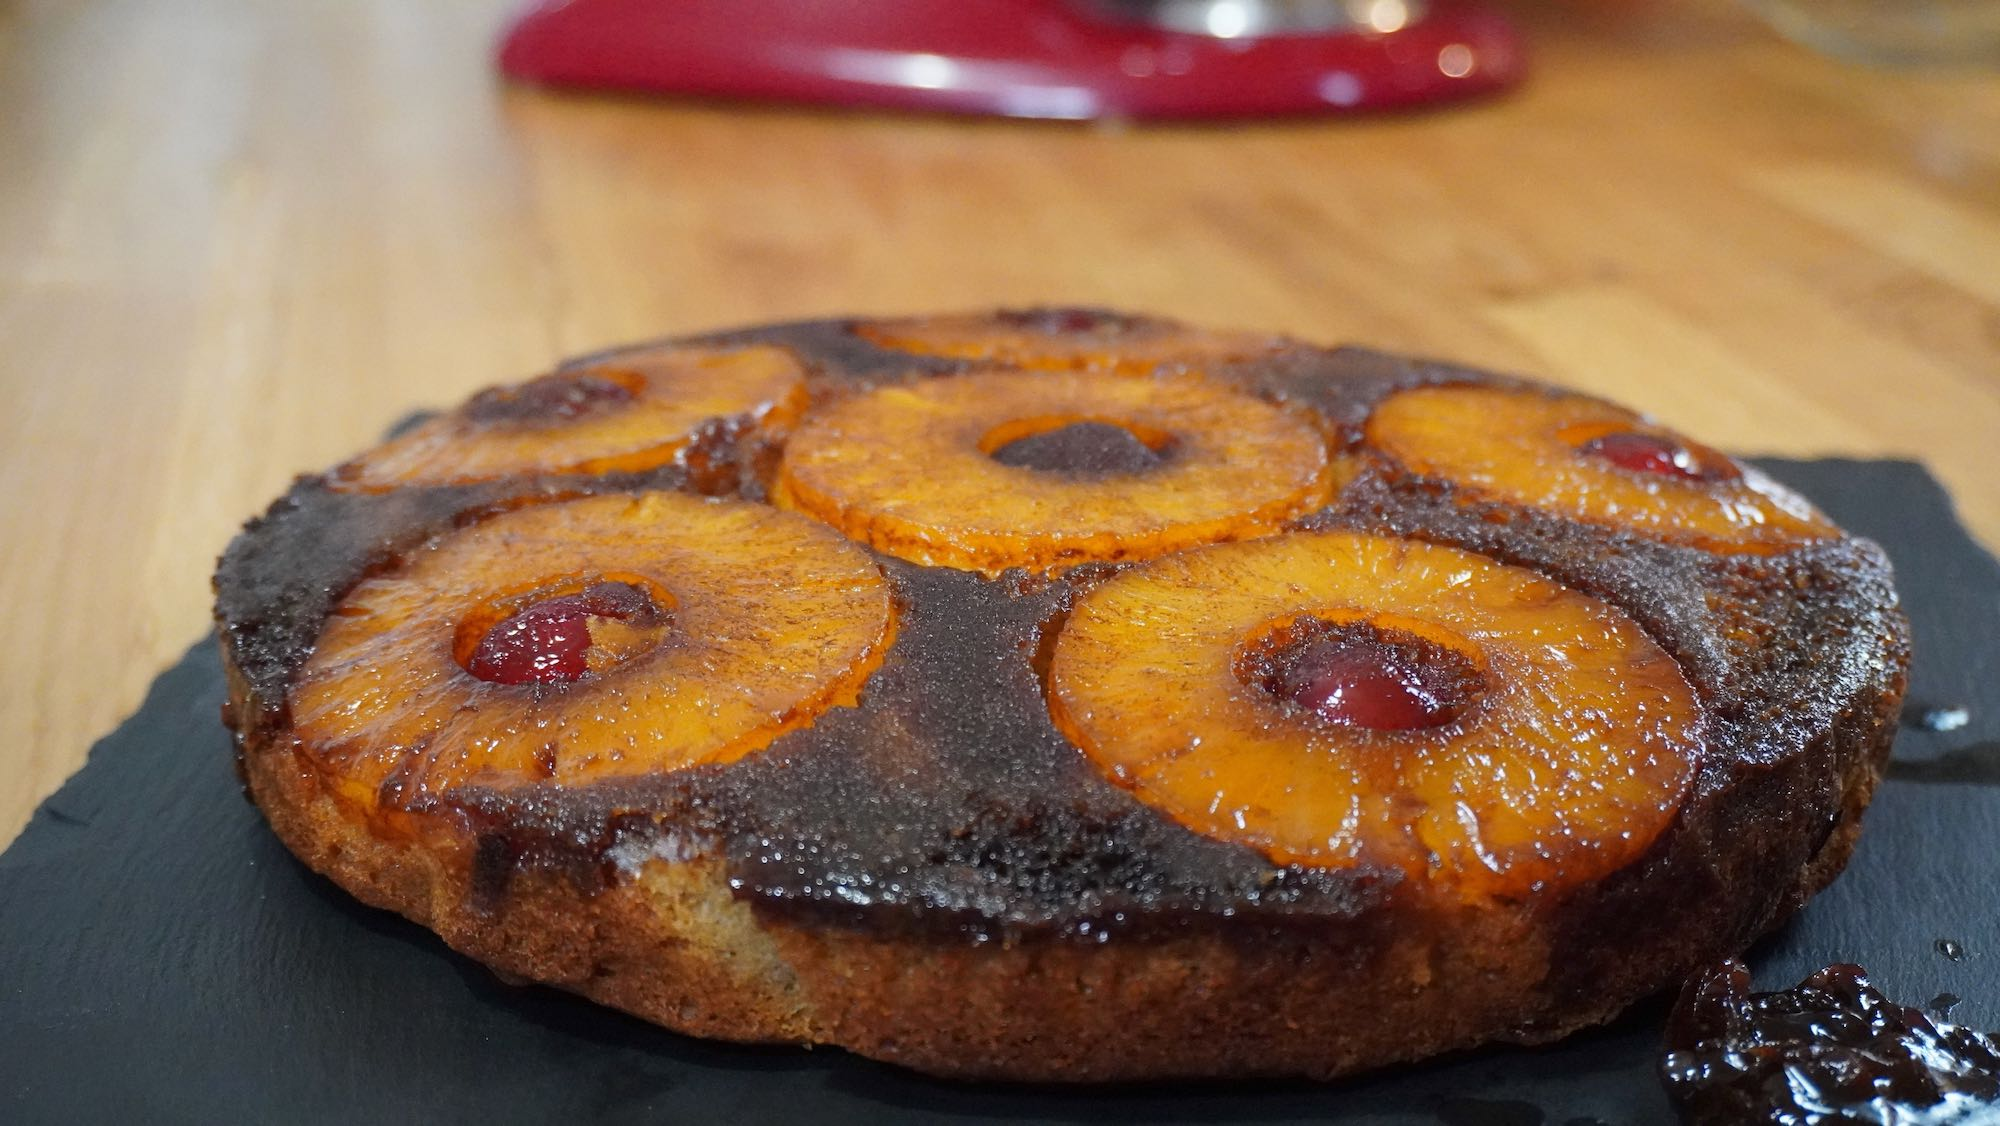 Pineapple Upside Down Cake with Spelt flour